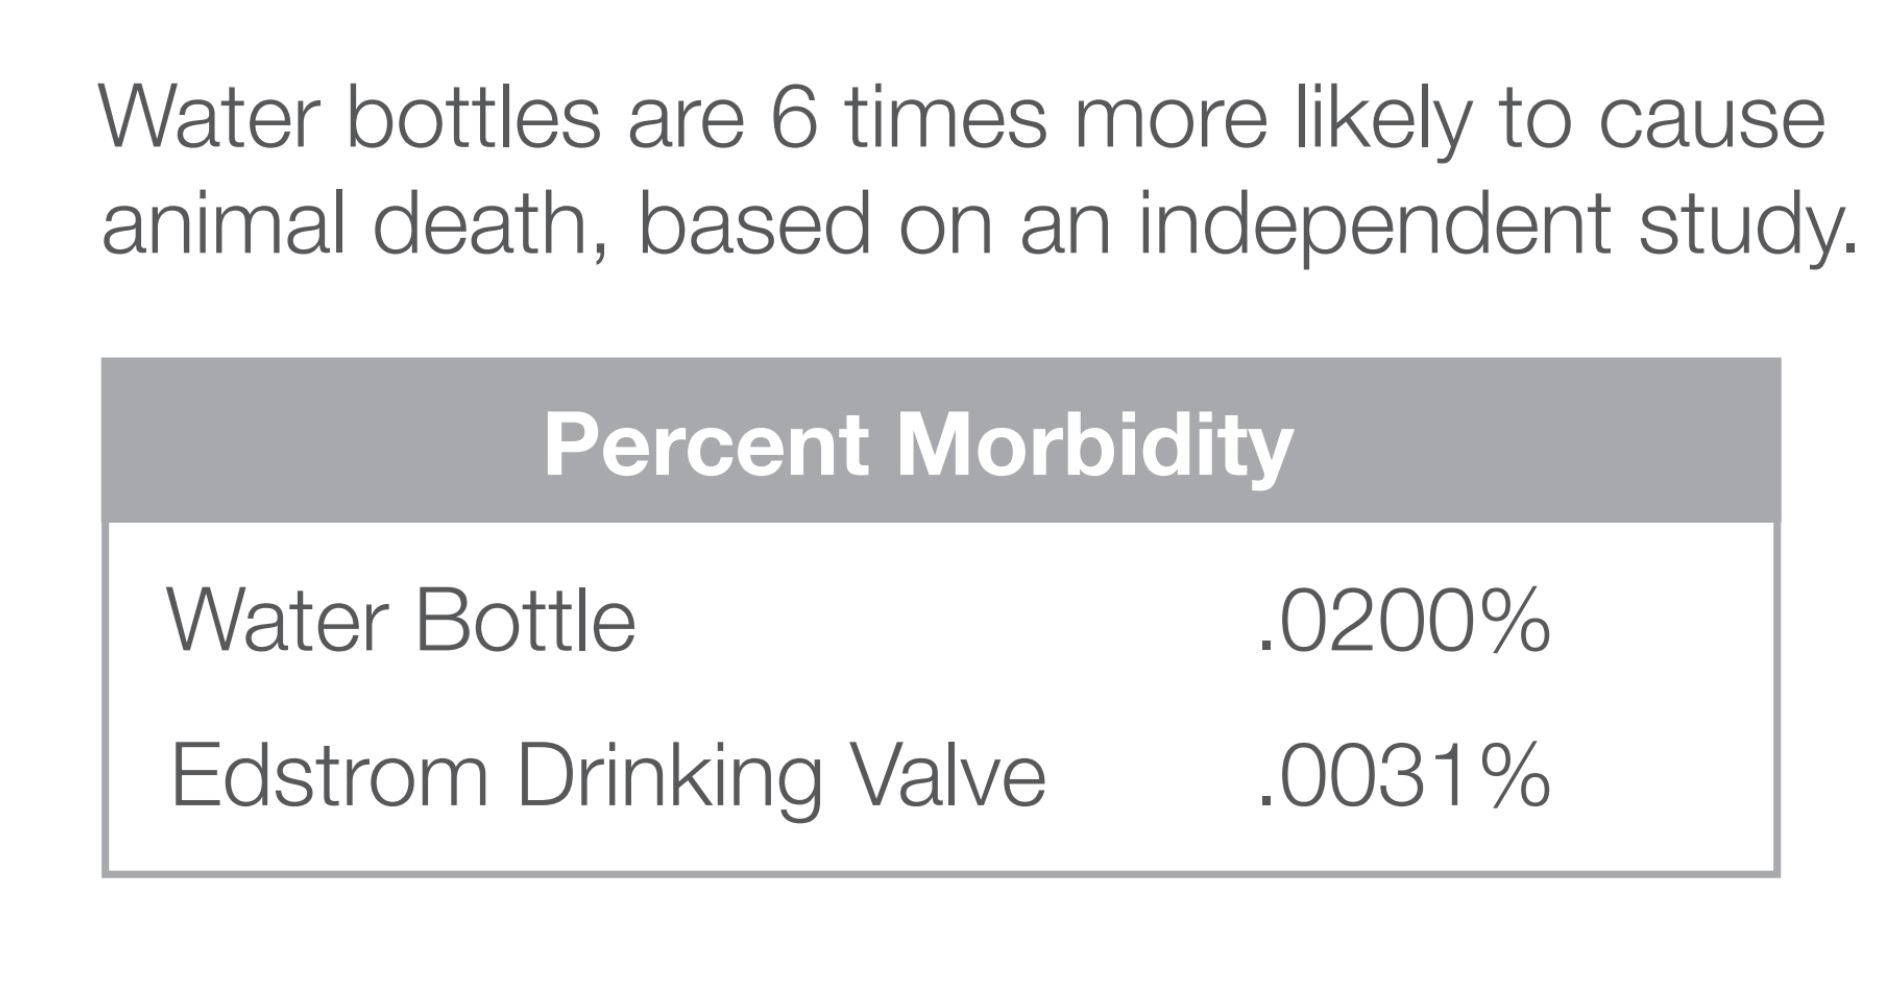 Bottles Vs Valves